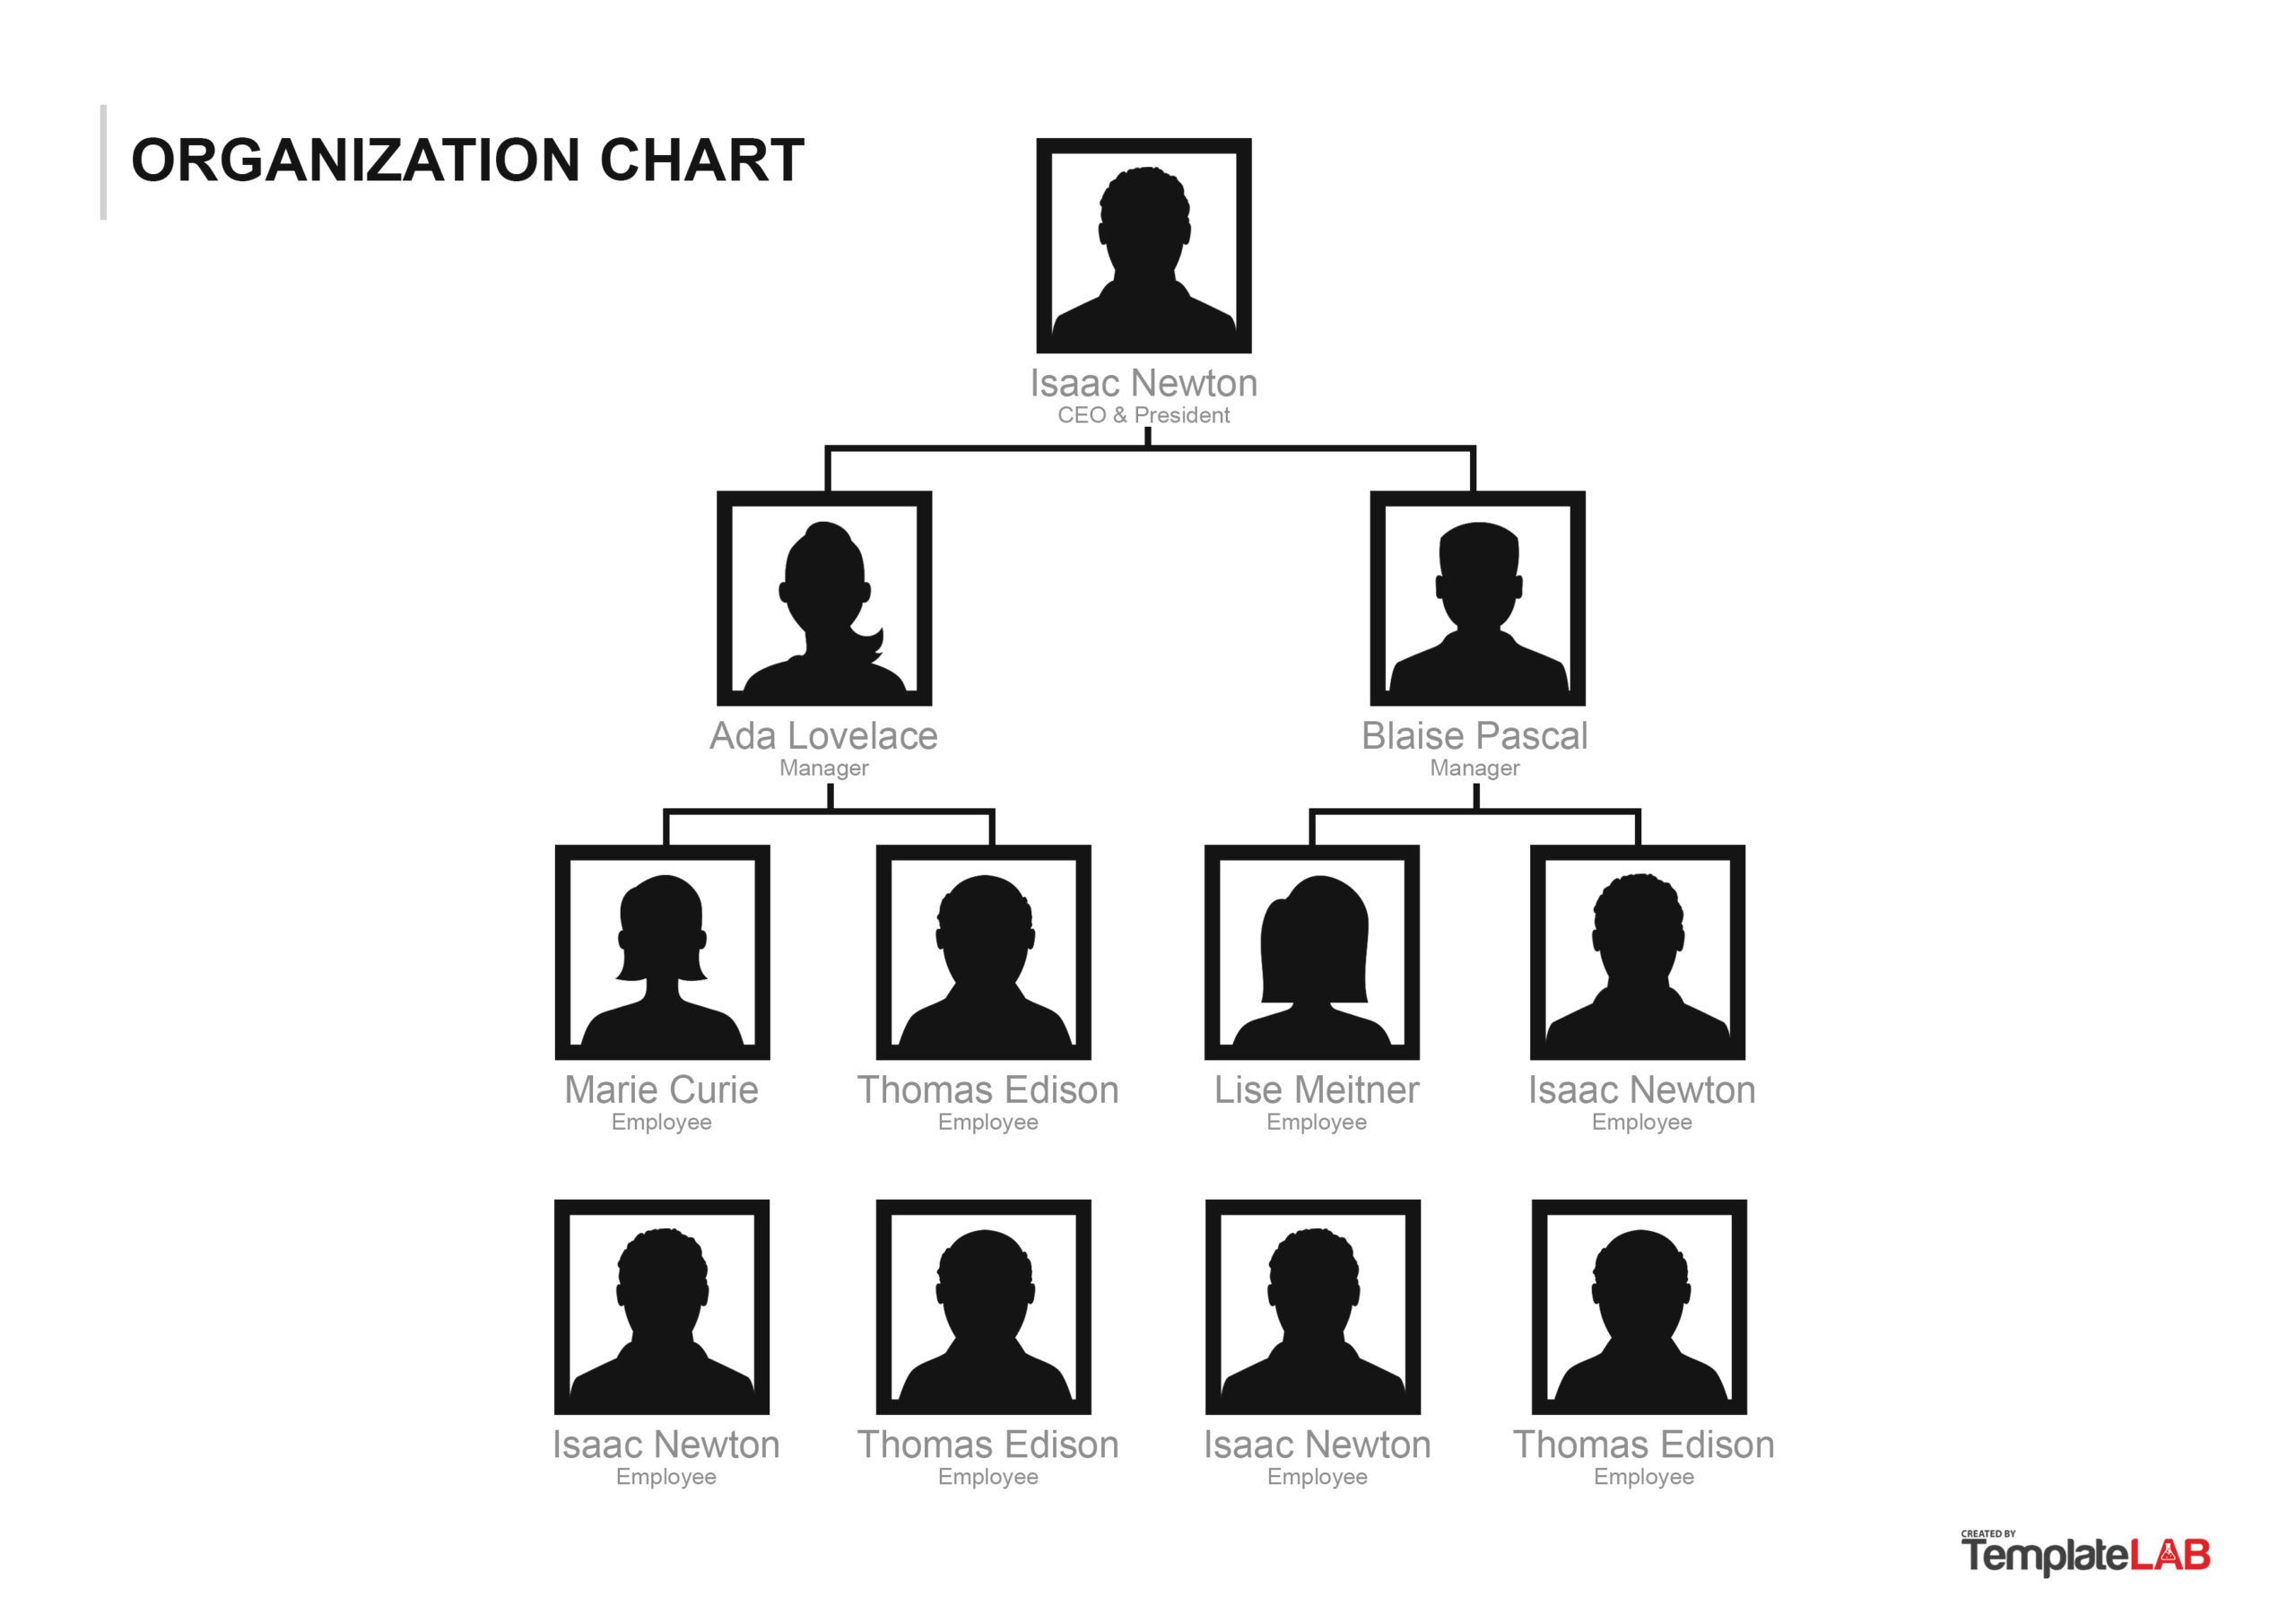 009 Exceptional Org Chart Template Microsoft Word 2010 Highest Clarity Full